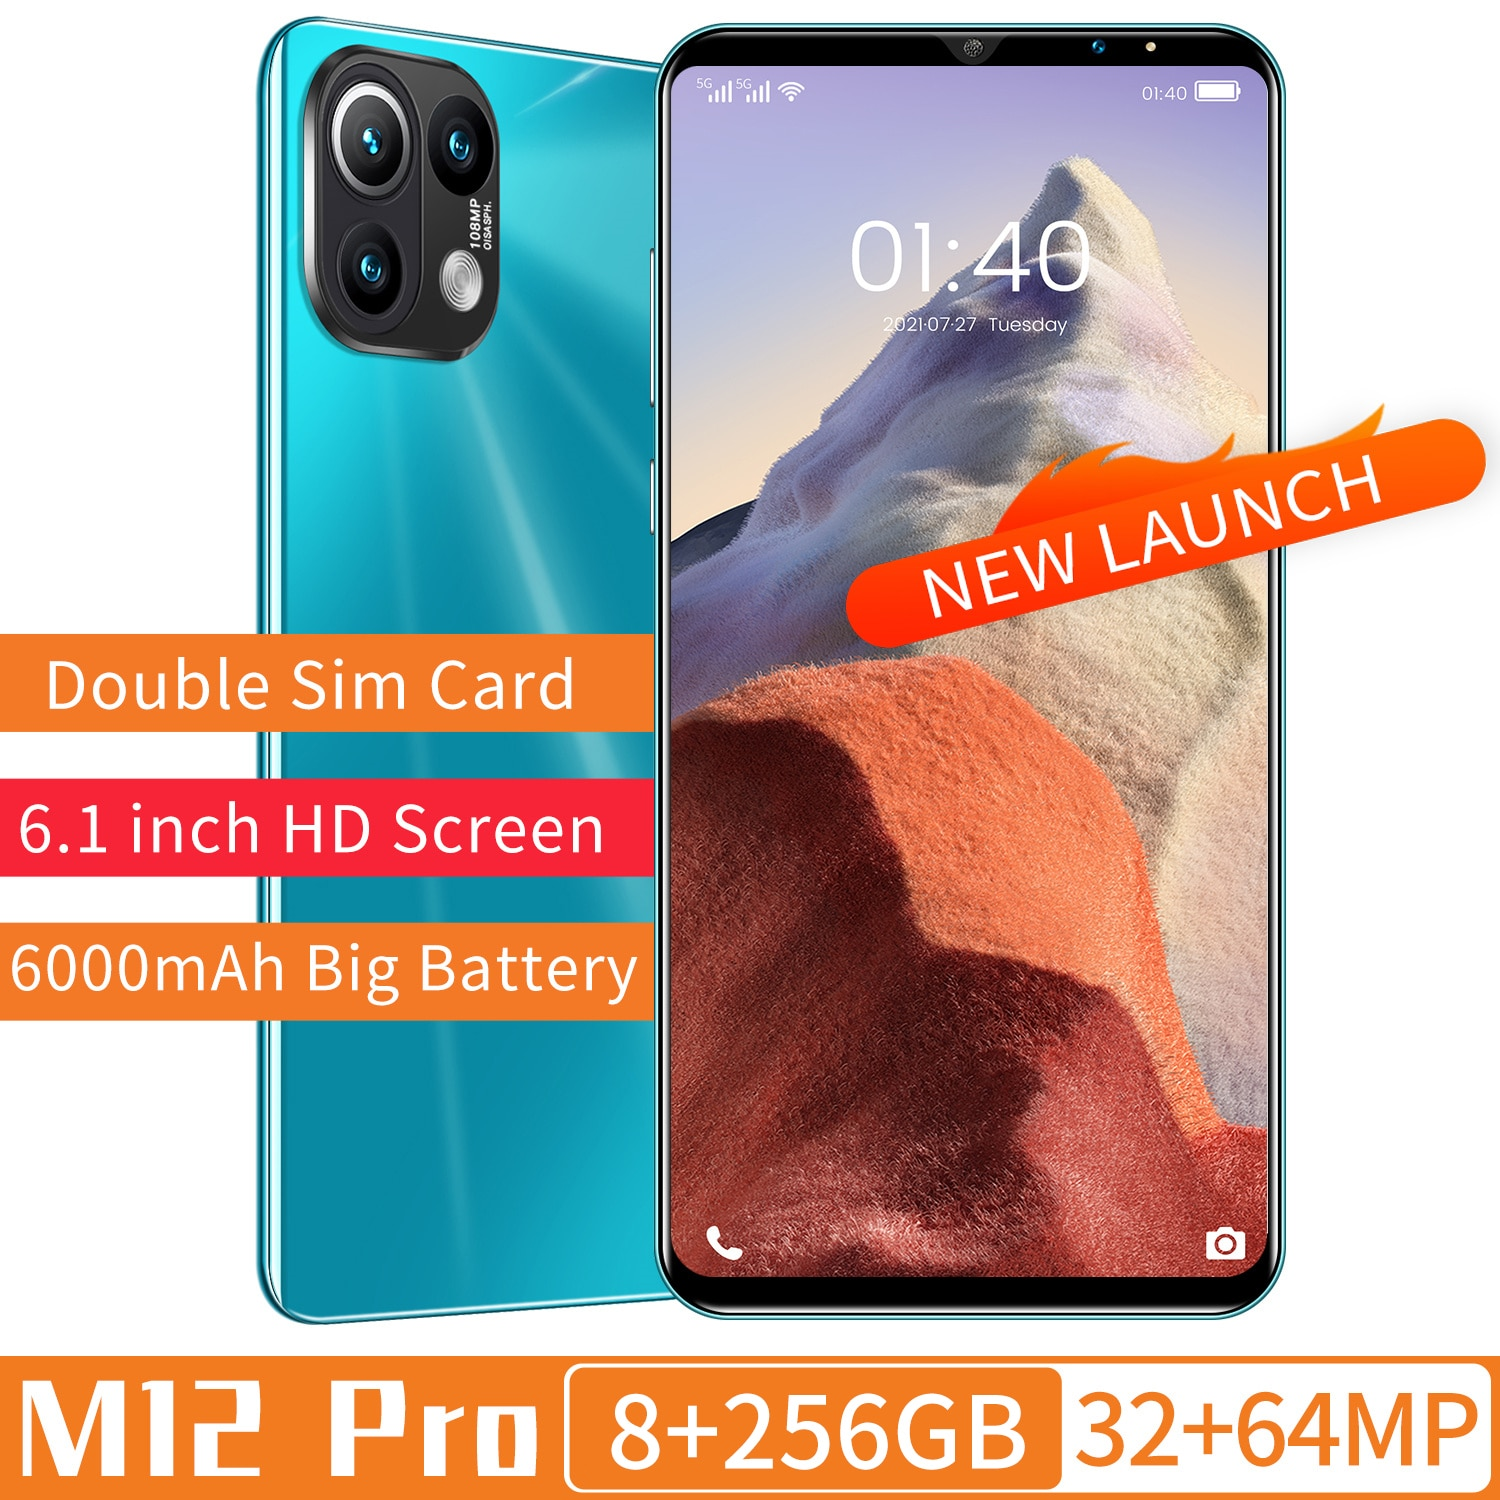 Hot Sale M12 Pro 1440*3200 8+256GB Android 11 6.1Inch Full Screen MTK6889 Deca Core 32+64MP Dual SIM Card 6000mAh Long Standby enlarge